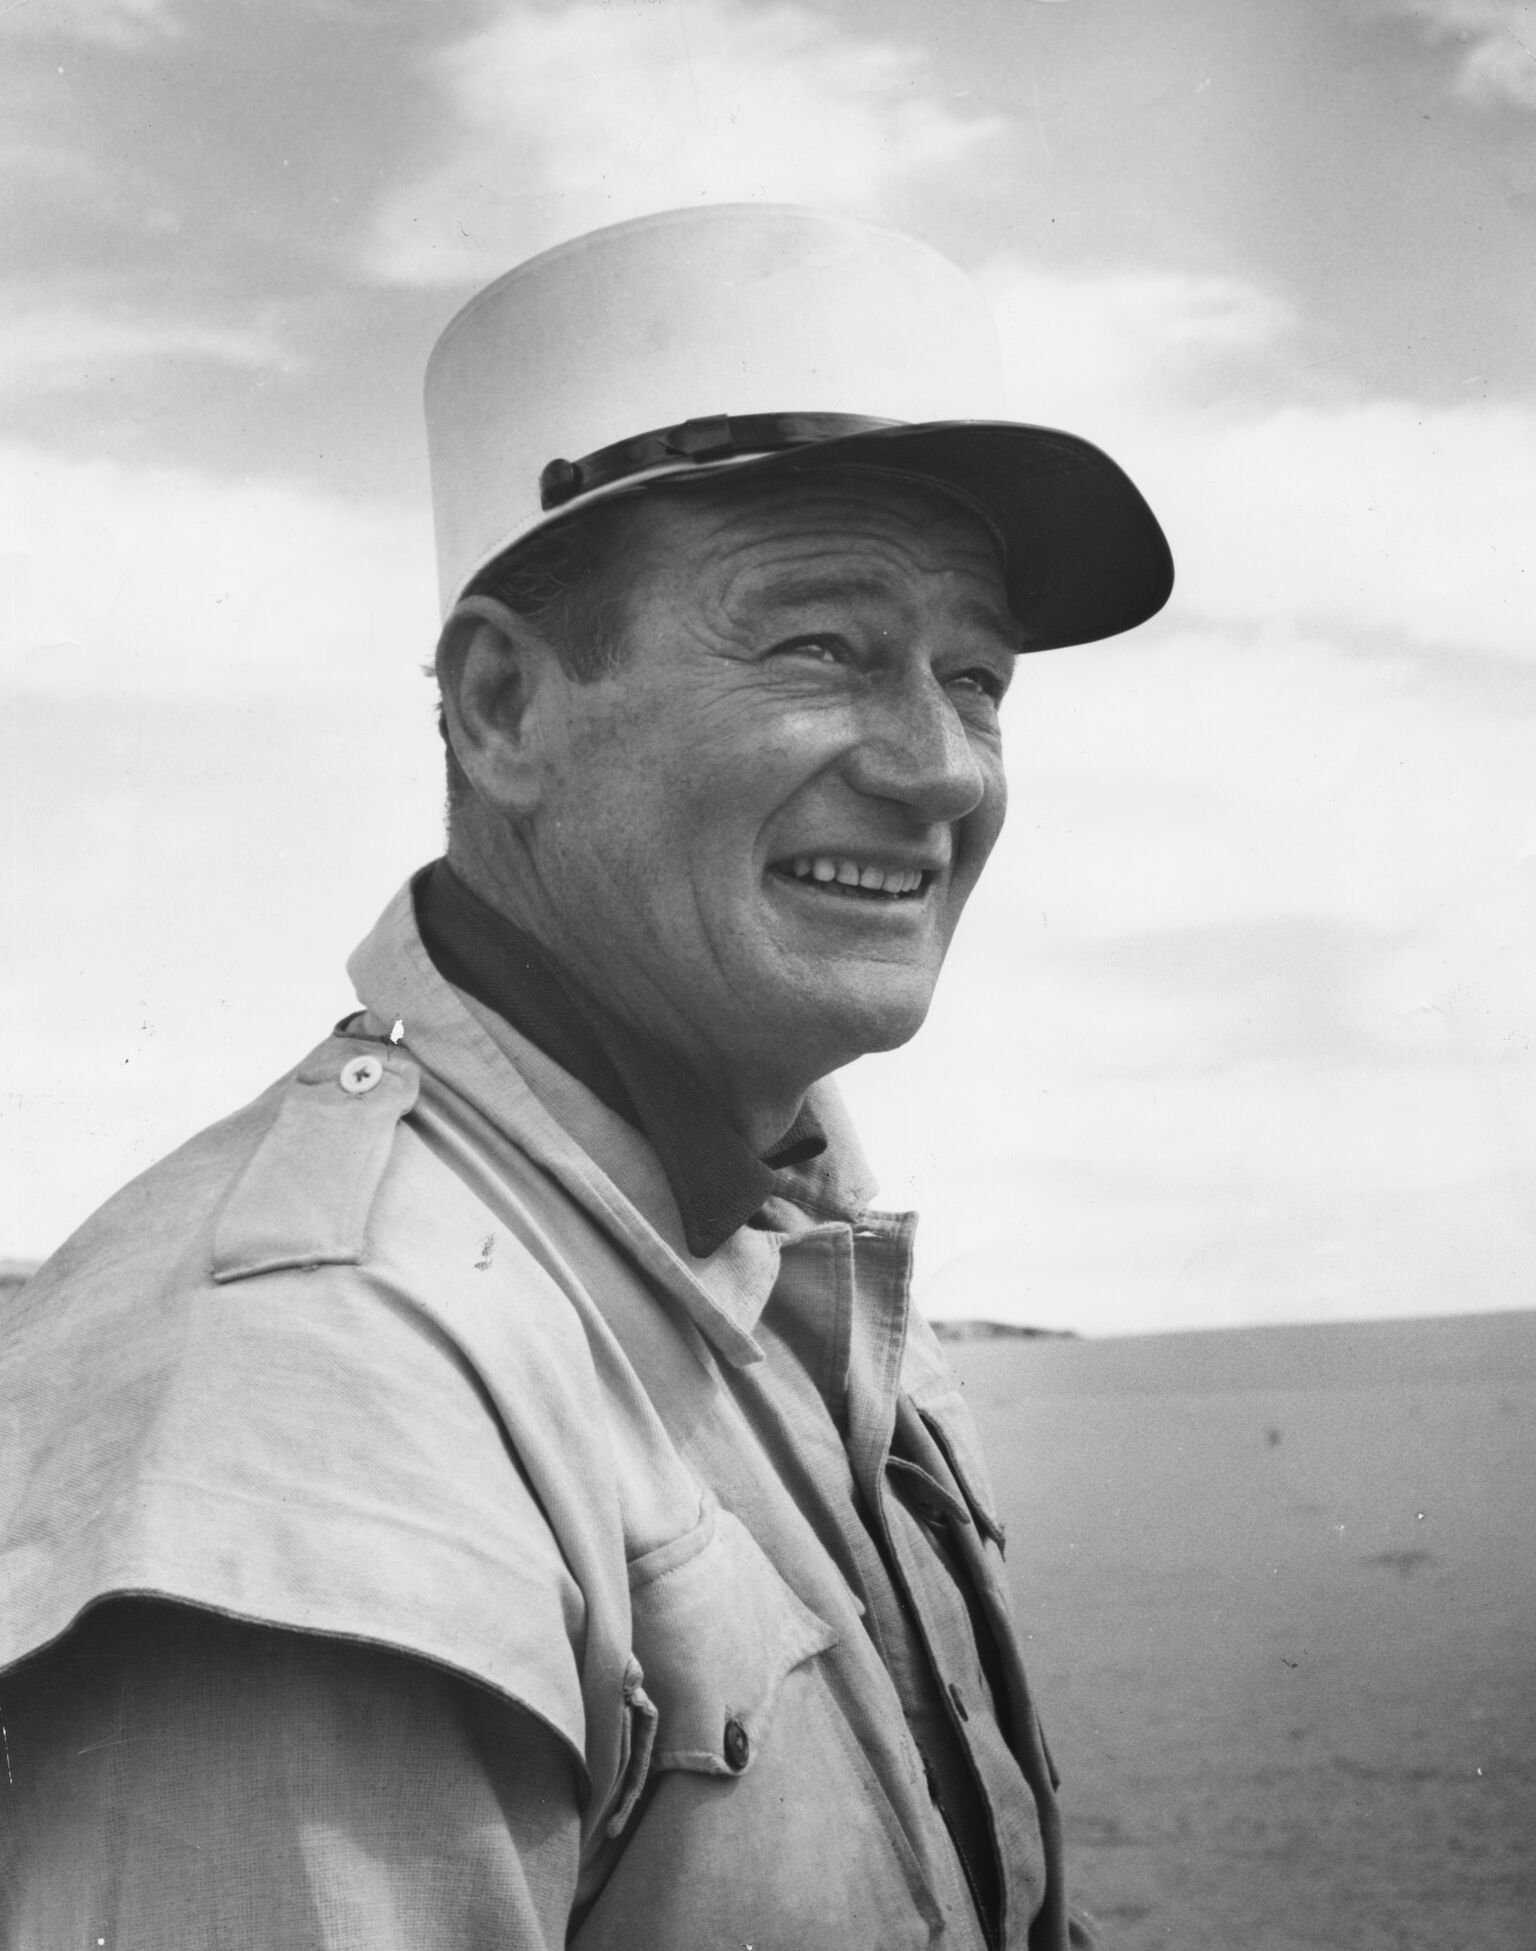 """John Wayne in costume, standing in a desert landscape filming the movie """"Legend of the Lost"""" 